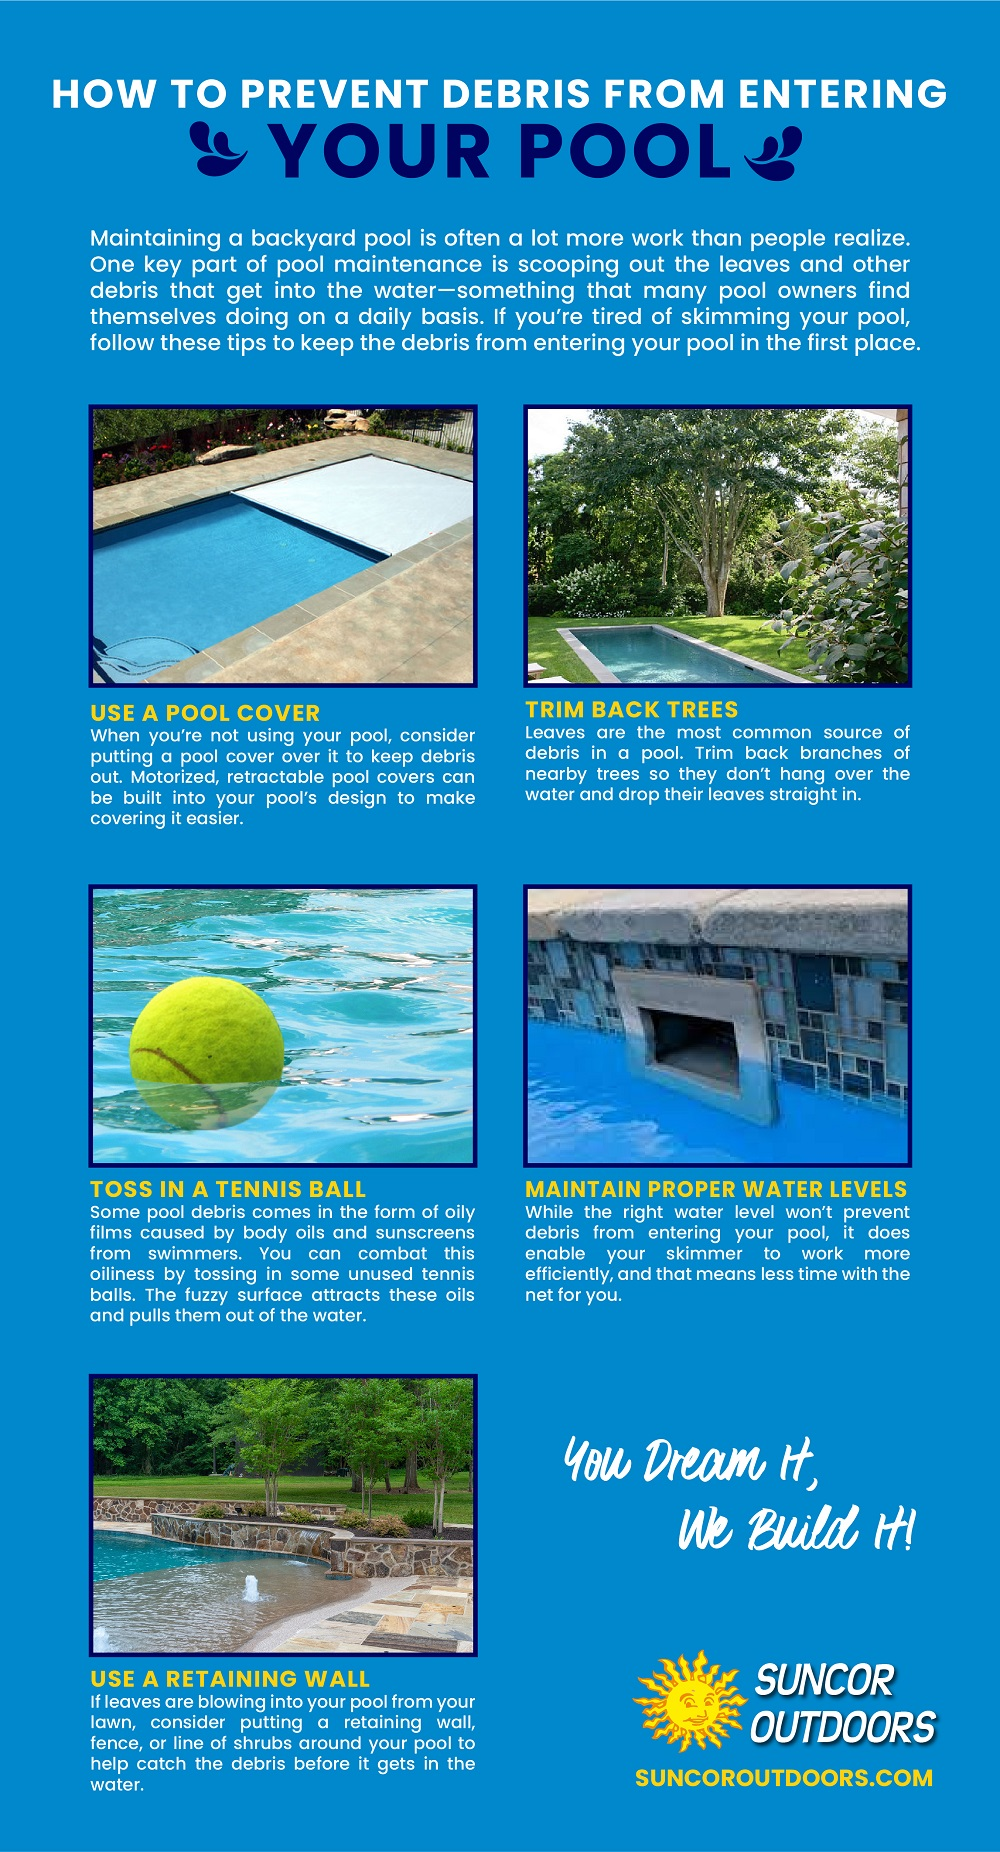 Follow These Tips to Prevent Debris from Entering the Pool